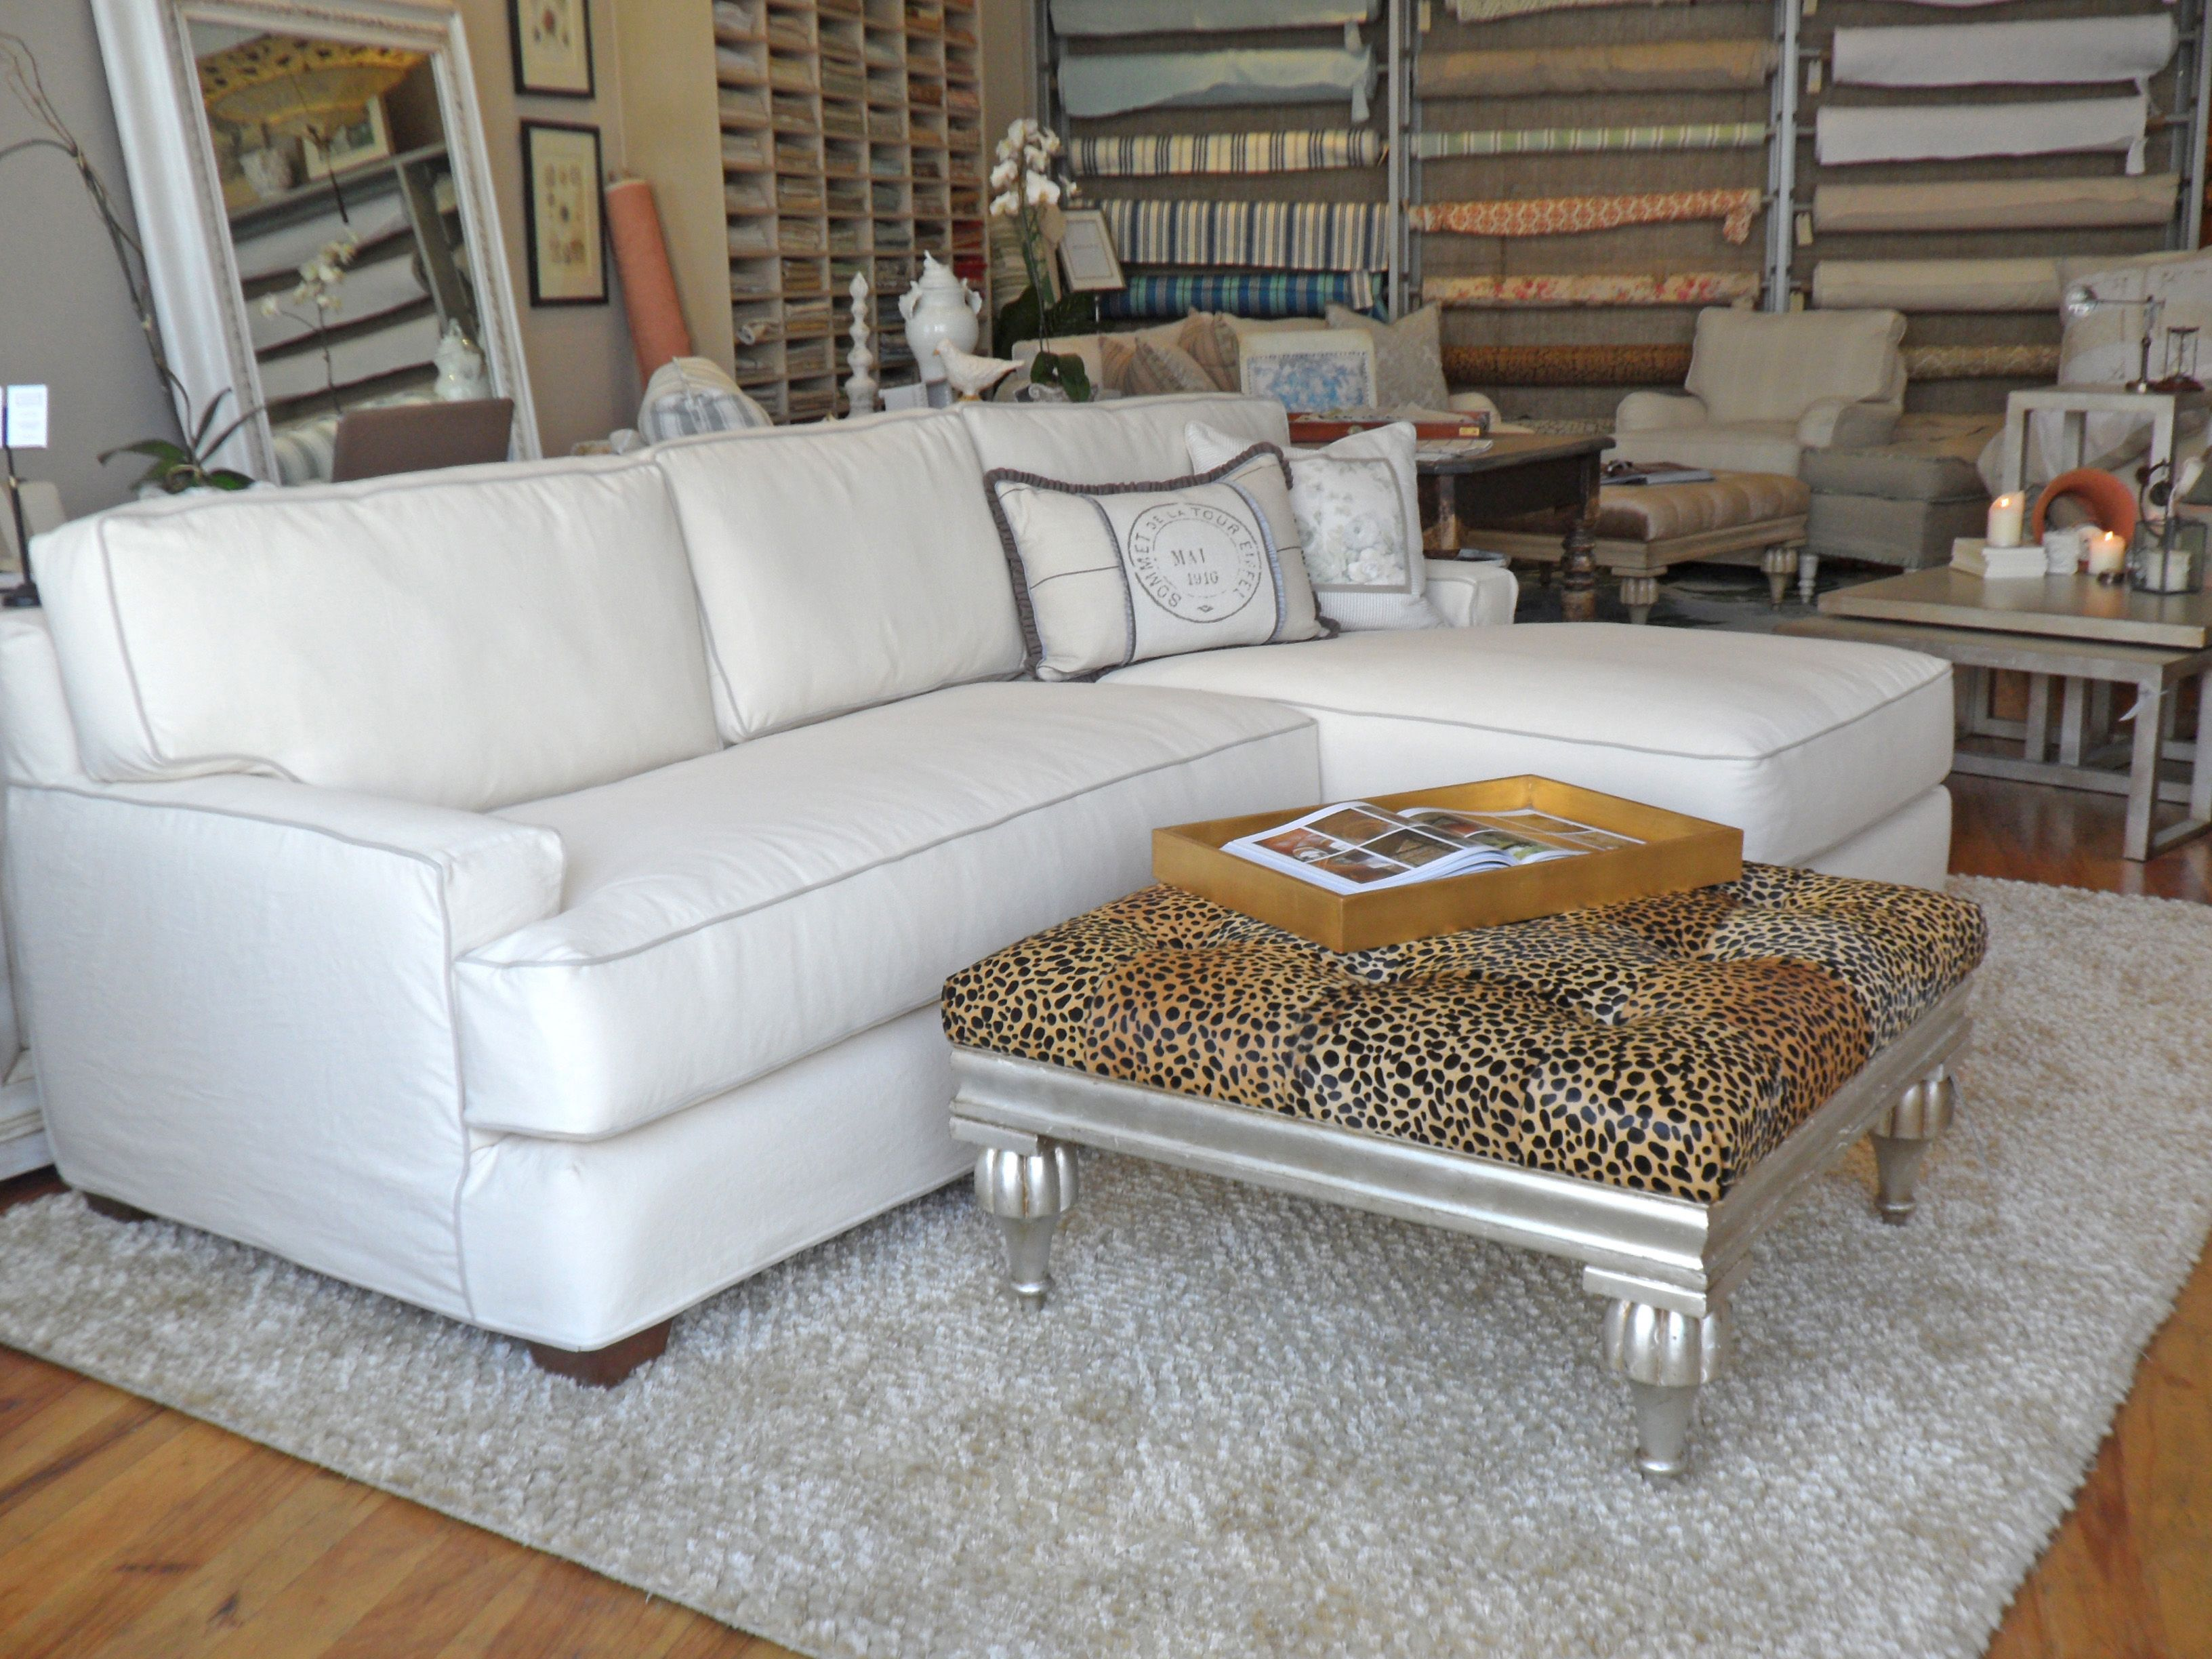 Remarkable Quatrine White Slipcovered New Yorker Chaise Sectional Alphanode Cool Chair Designs And Ideas Alphanodeonline